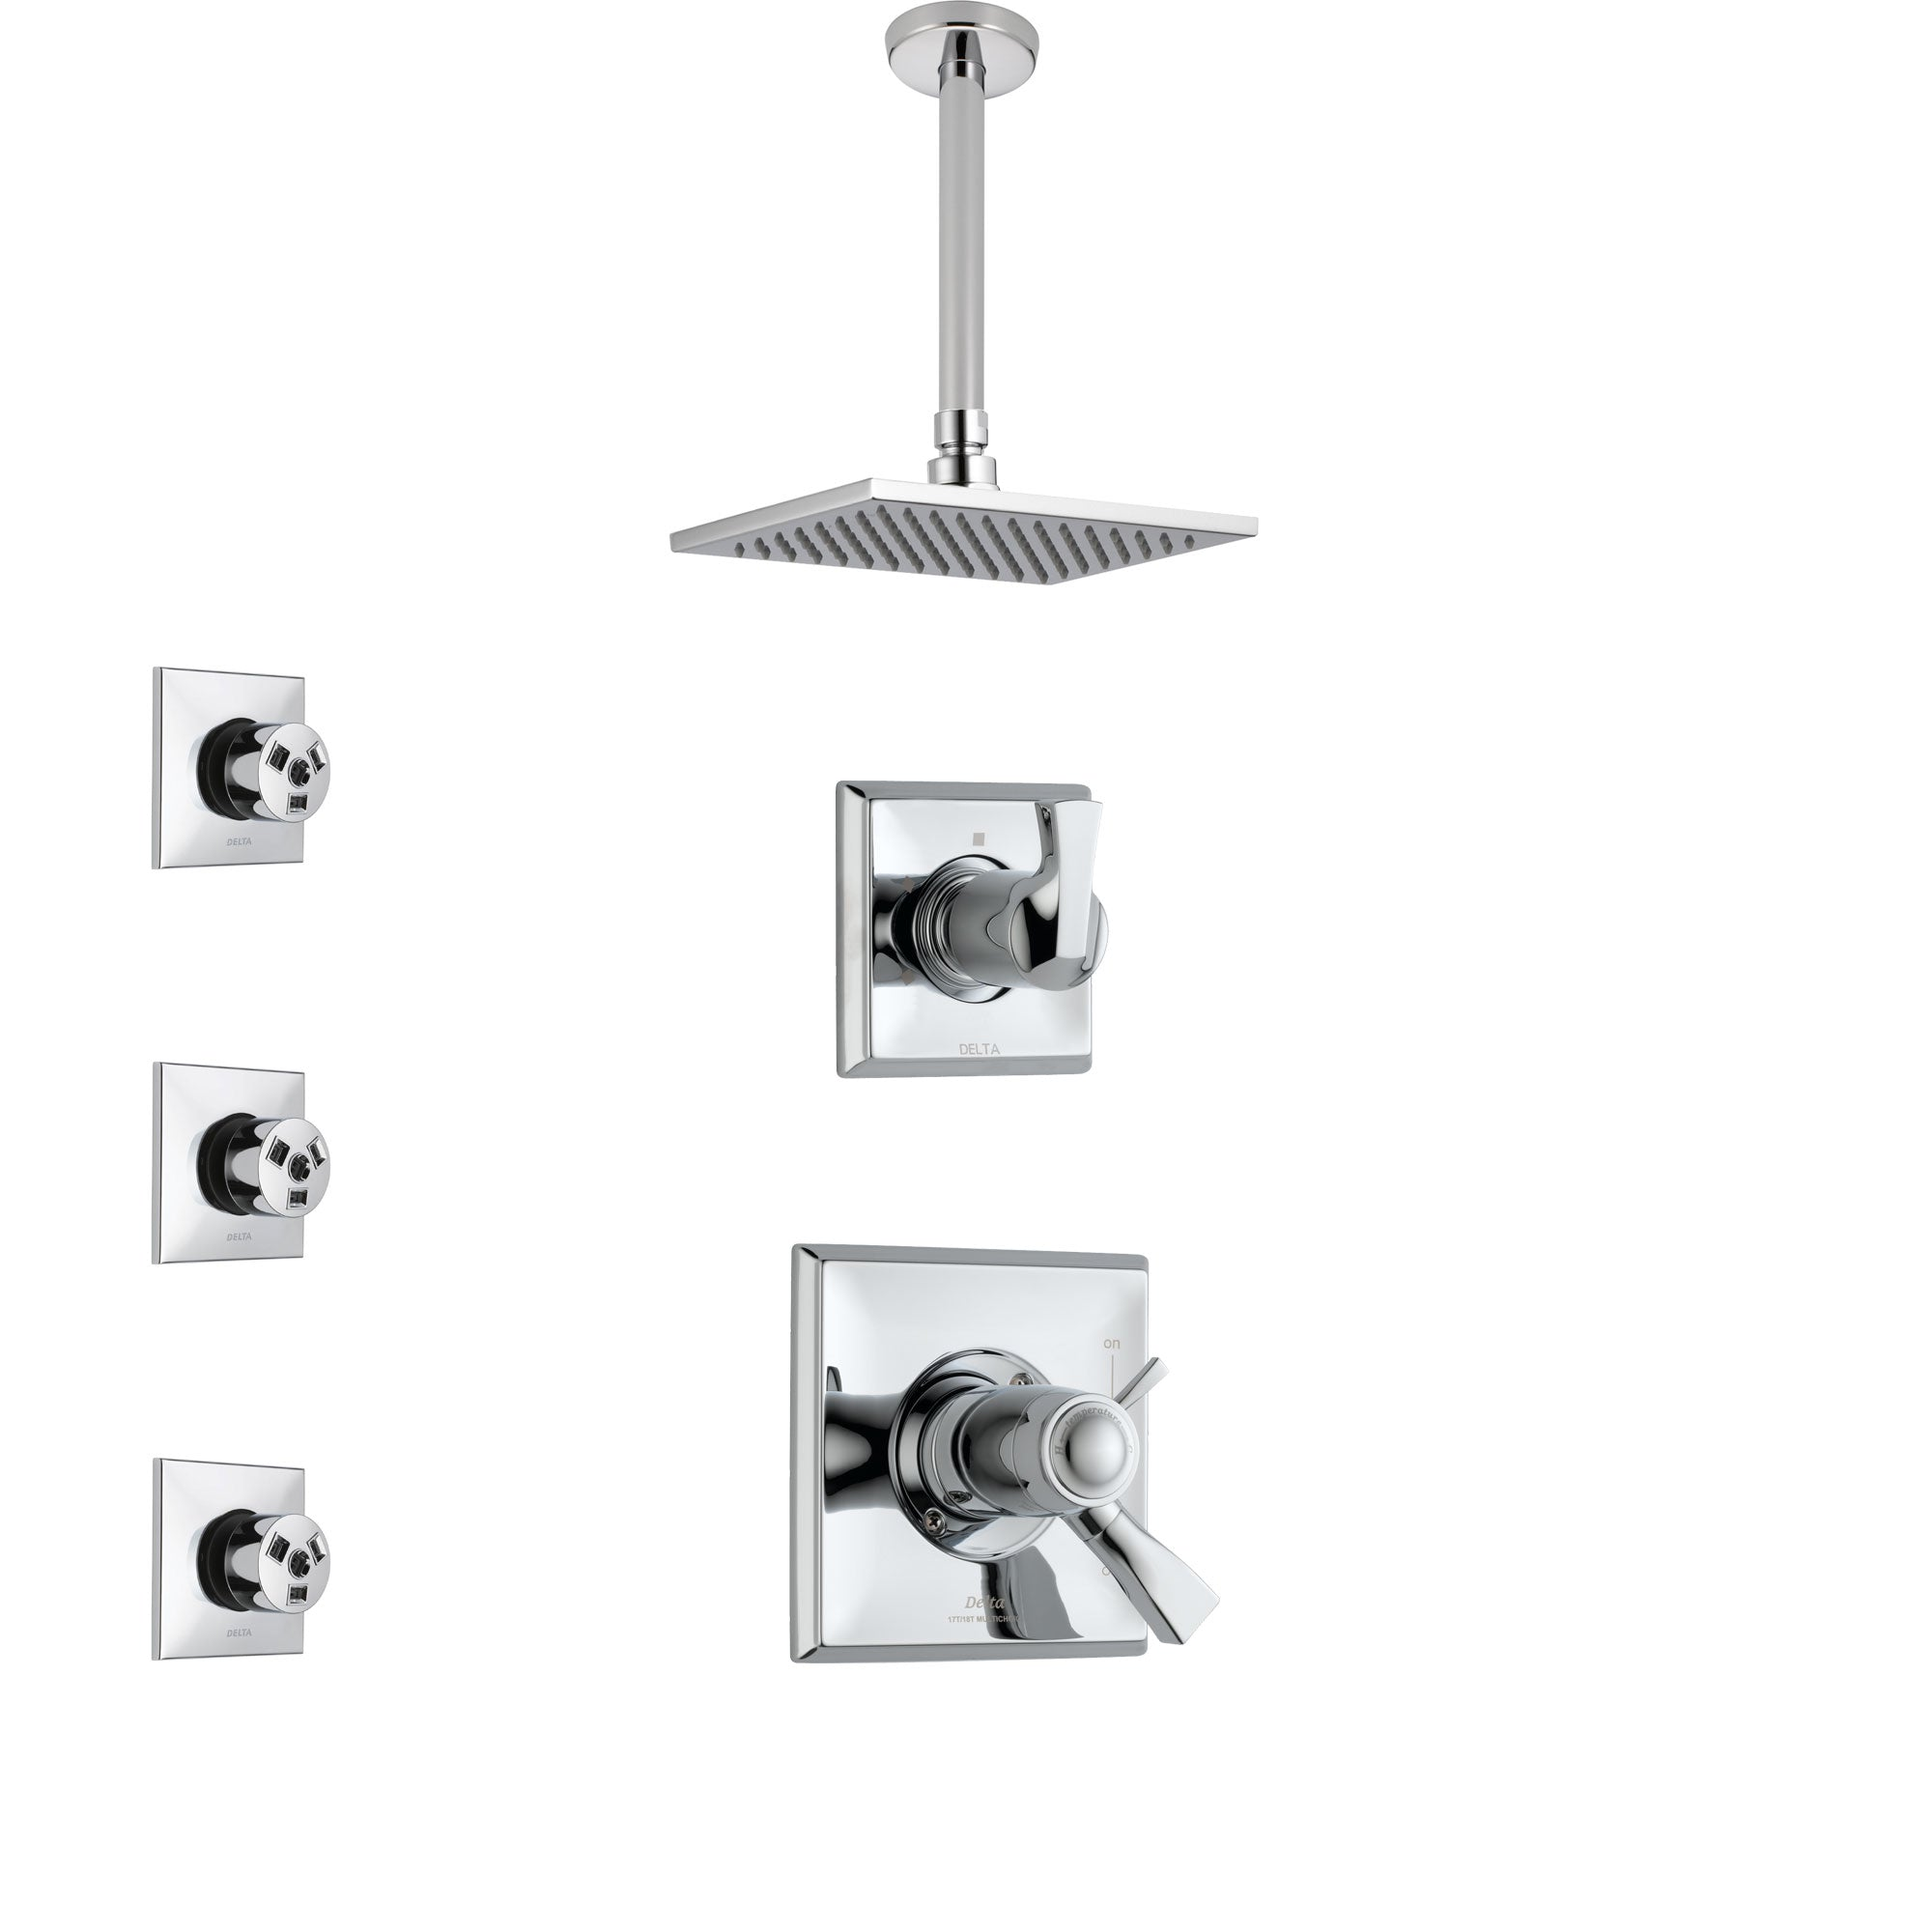 Delta Dryden Chrome Finish Shower System with Dual Thermostatic Control Handle, Diverter, Ceiling Mount Showerhead, and 3 Body Sprays SS17T5117